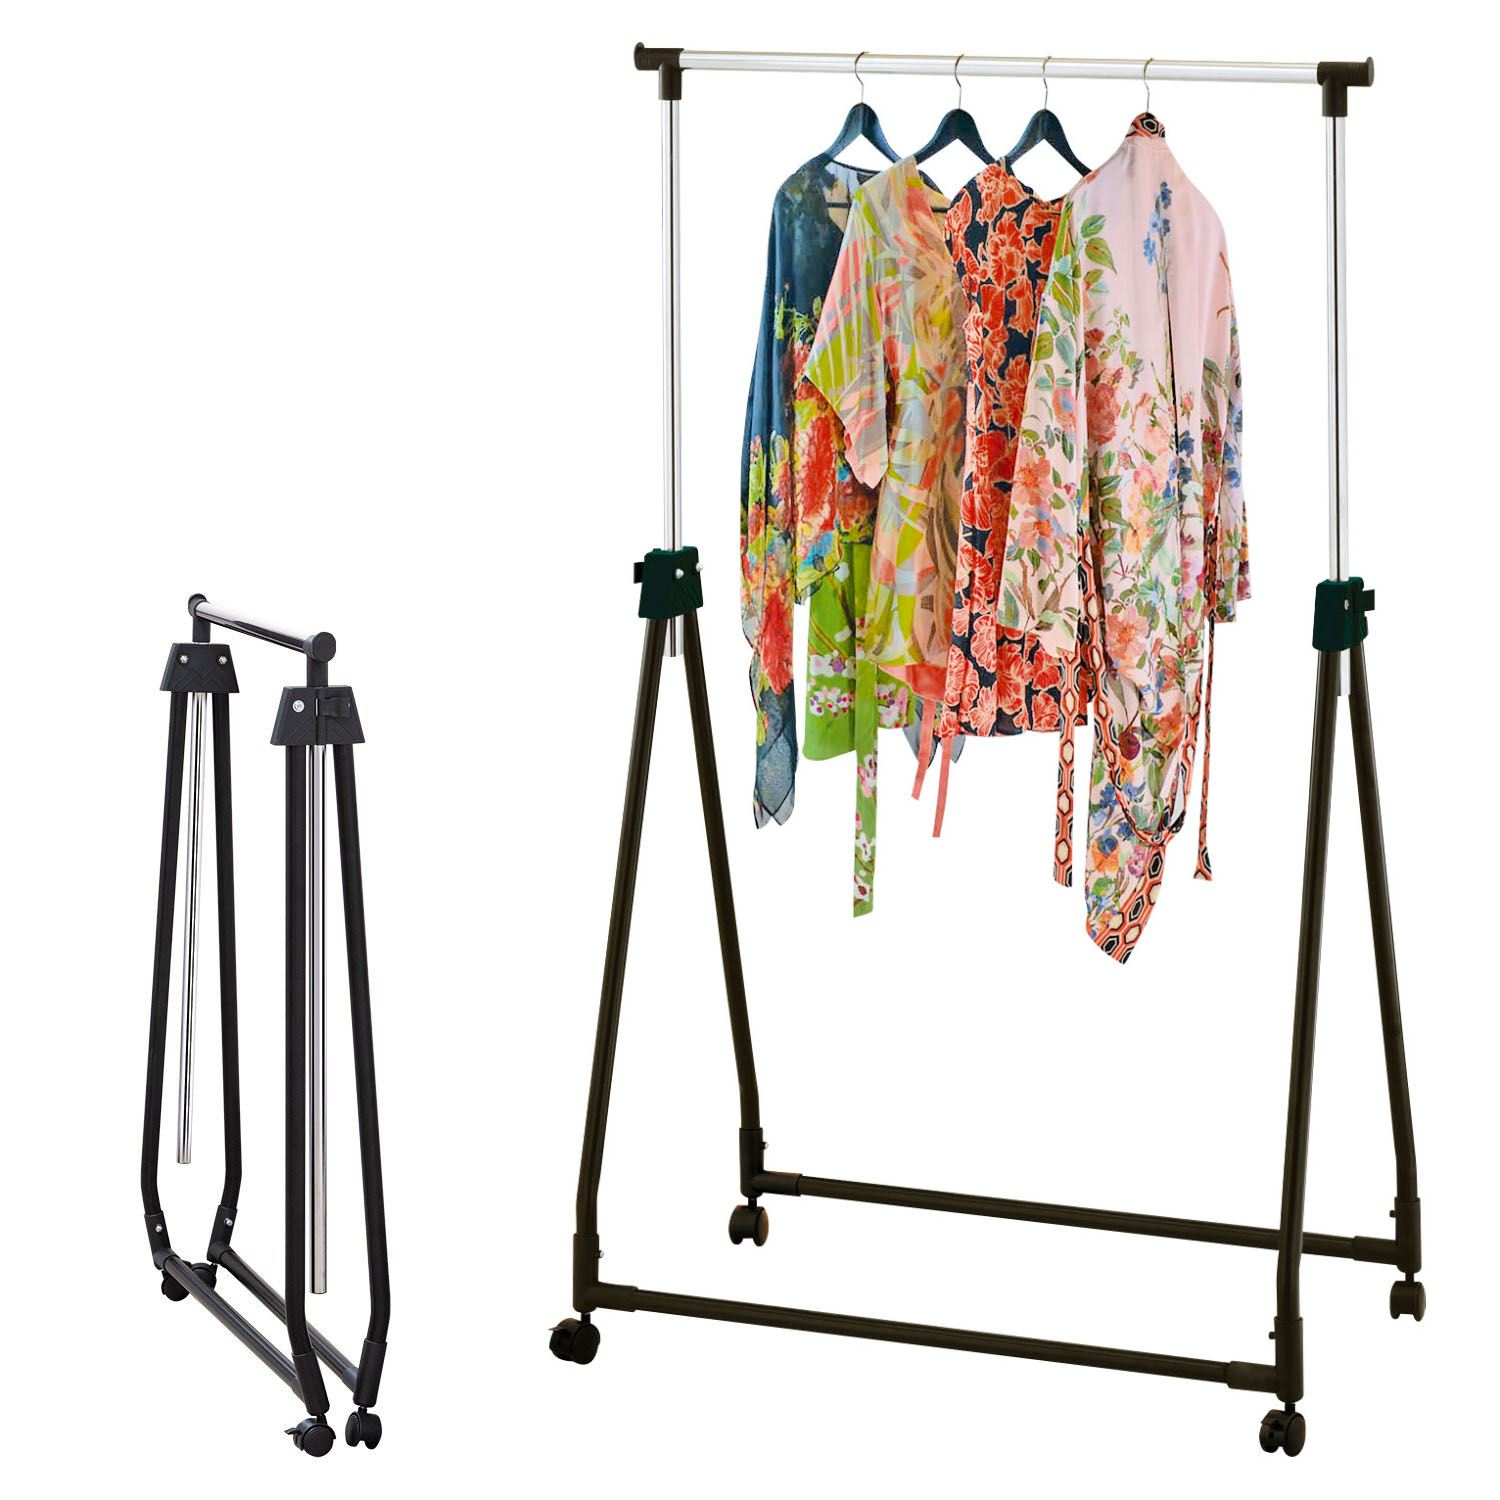 Chrome Black Portable Collapsible Clothes Hanging Rail Adjustable